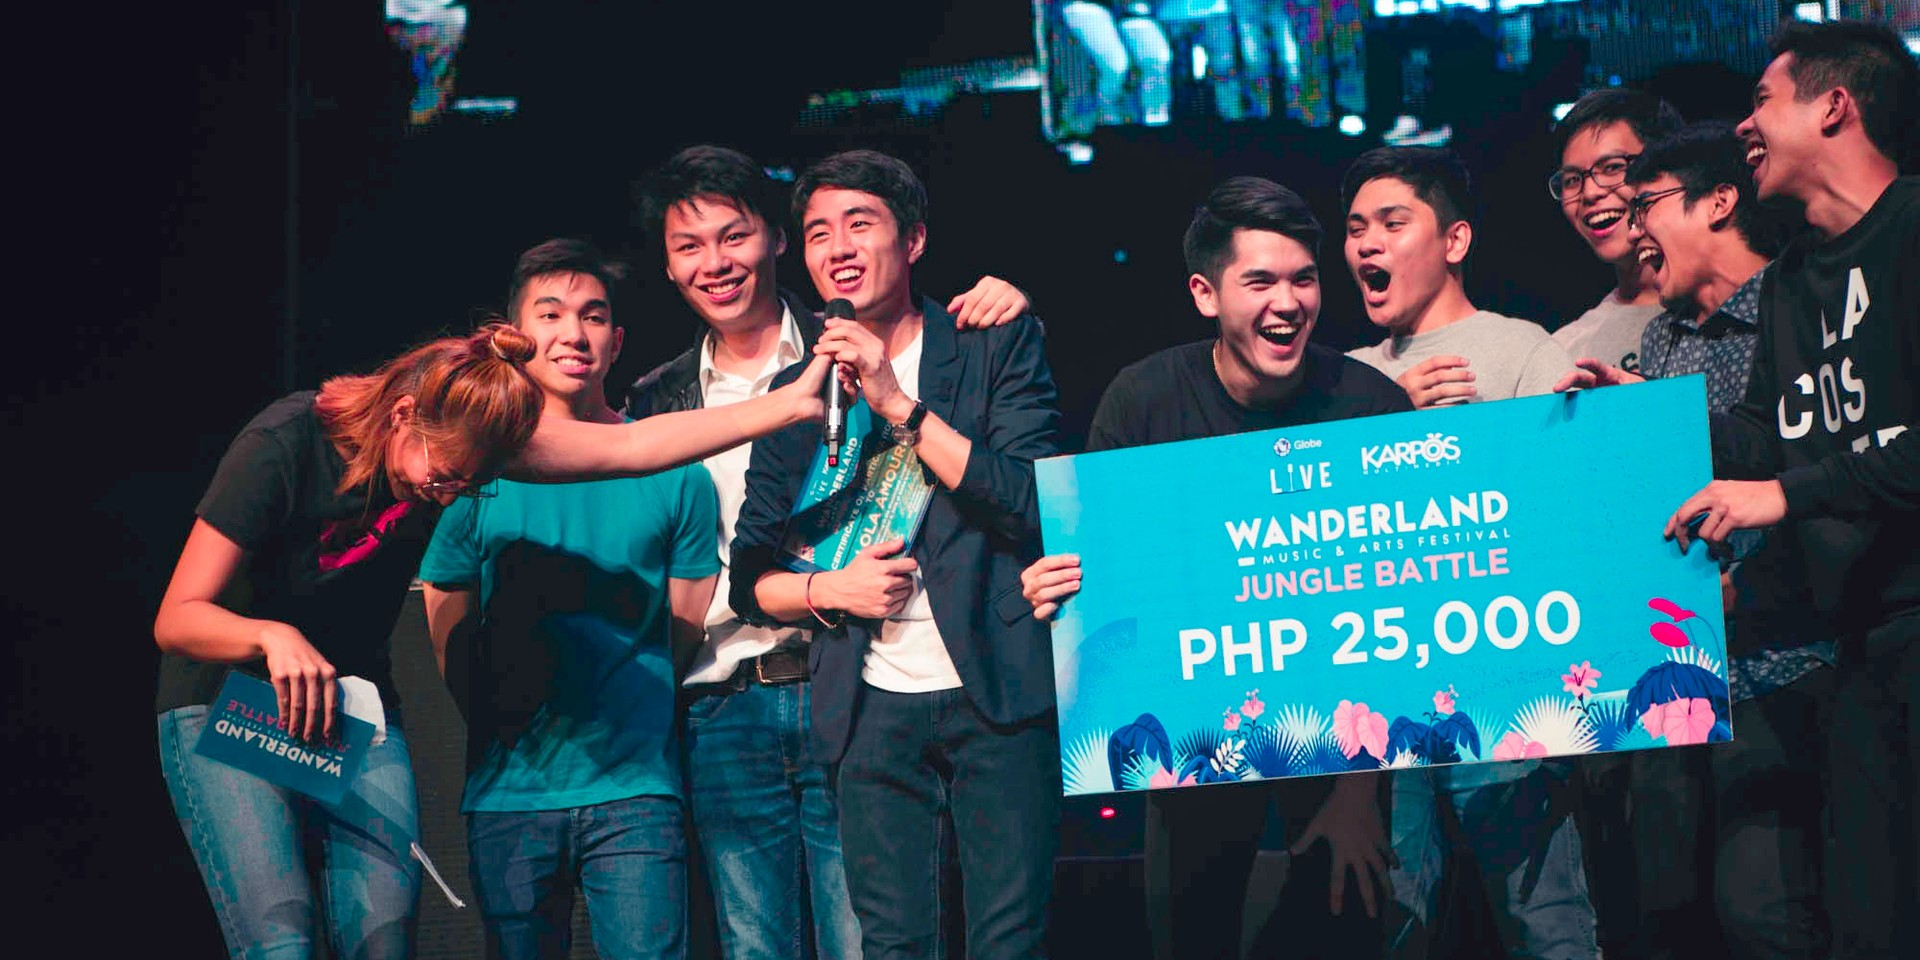 Lola Amour wins Wanderband 2017; Wanderland announce 4 new acts on the line up